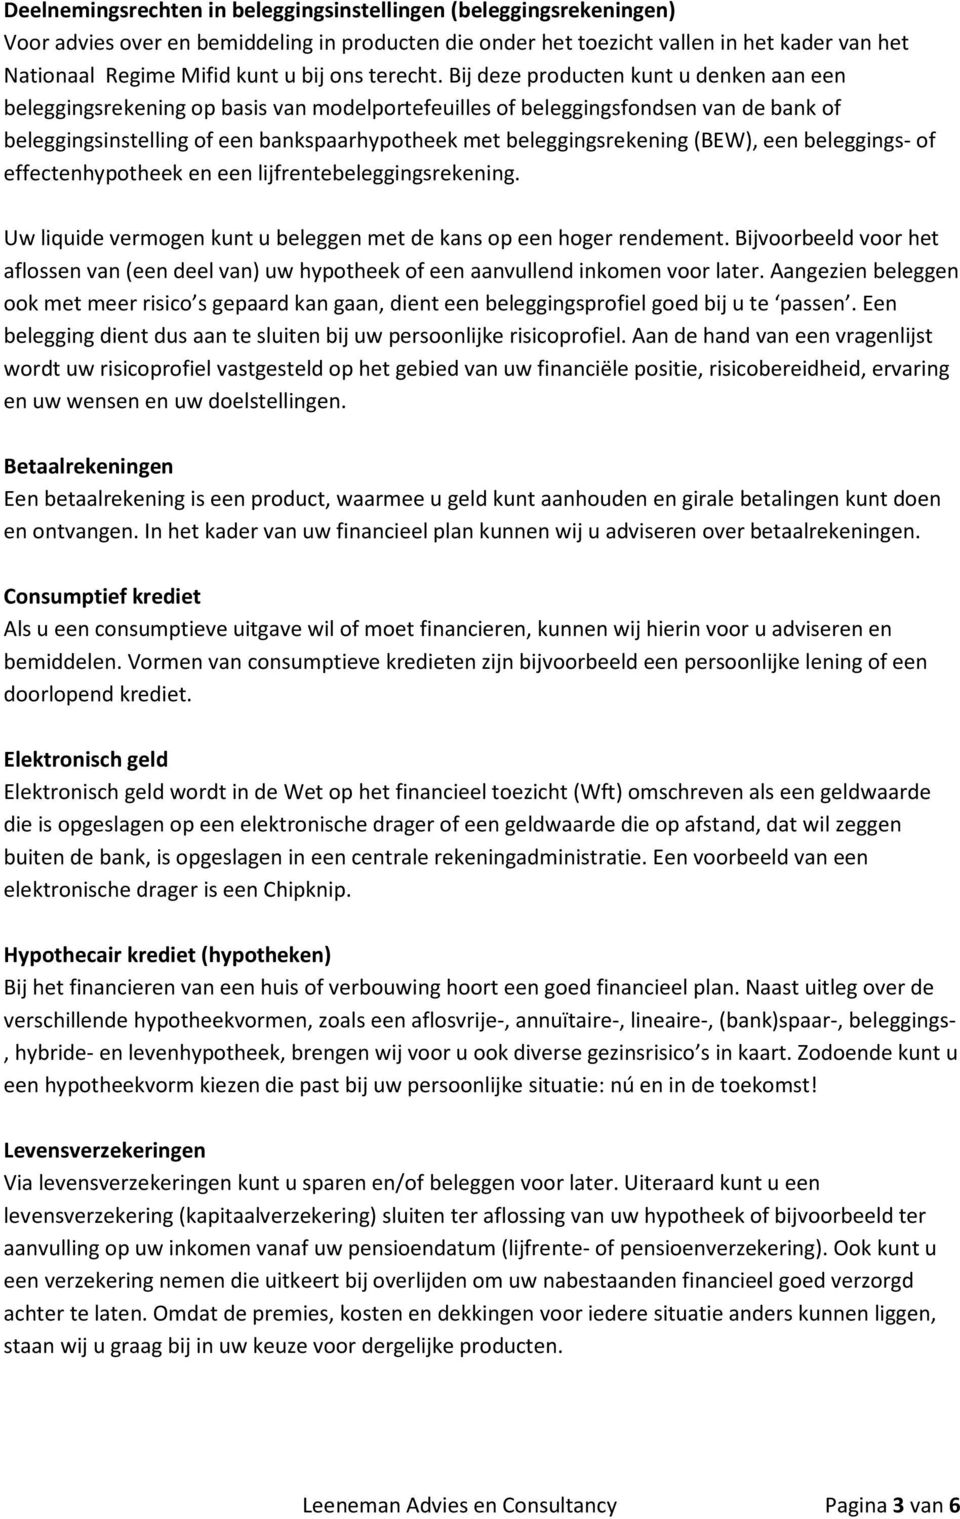 Bij deze producten kunt u denken aan een beleggingsrekening op basis van modelportefeuilles of beleggingsfondsen van de bank of beleggingsinstelling of een bankspaarhypotheek met beleggingsrekening